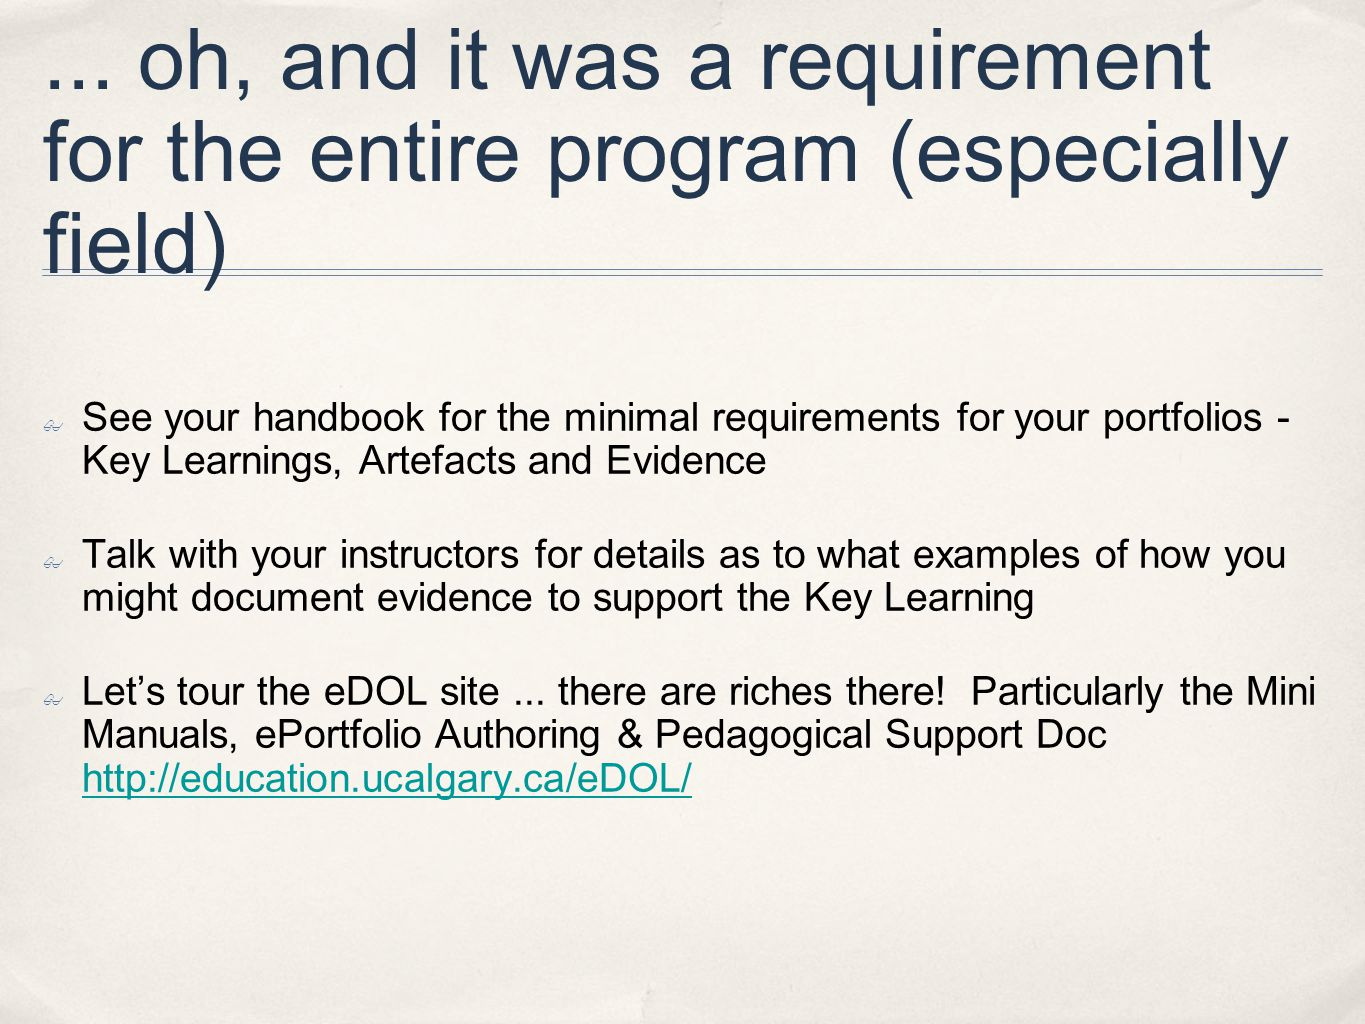 ... oh, and it was a requirement for the entire program (especially field) ✤ See your handbook for the minimal requirements for your portfolios - Key